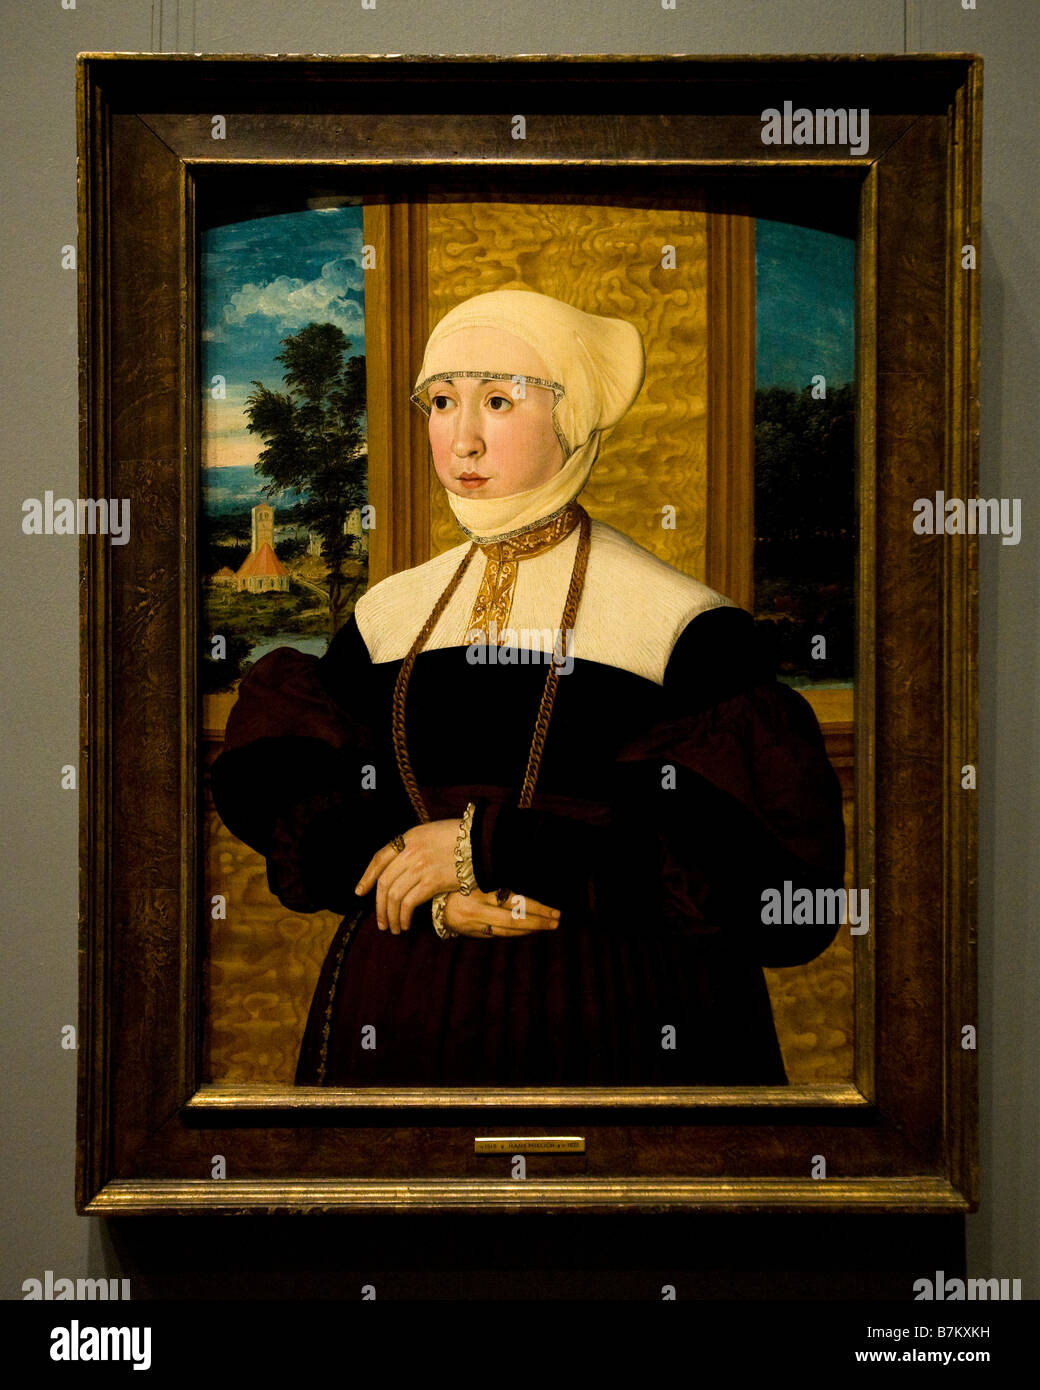 'Portrait of a Woman' by Hans Mielich, 1540 - Stock Image